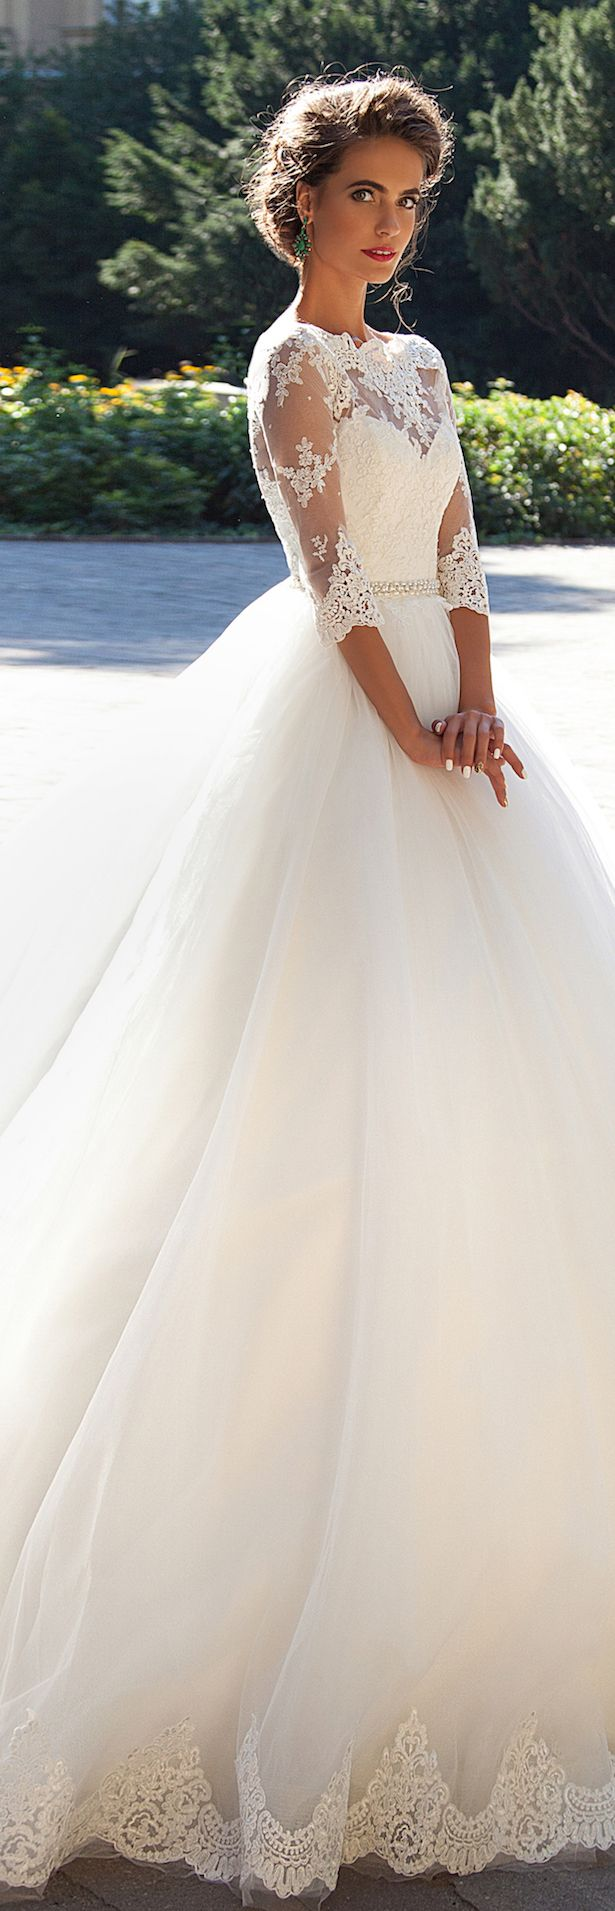 Usually ium not a big fan of tule but this dress is beautiful